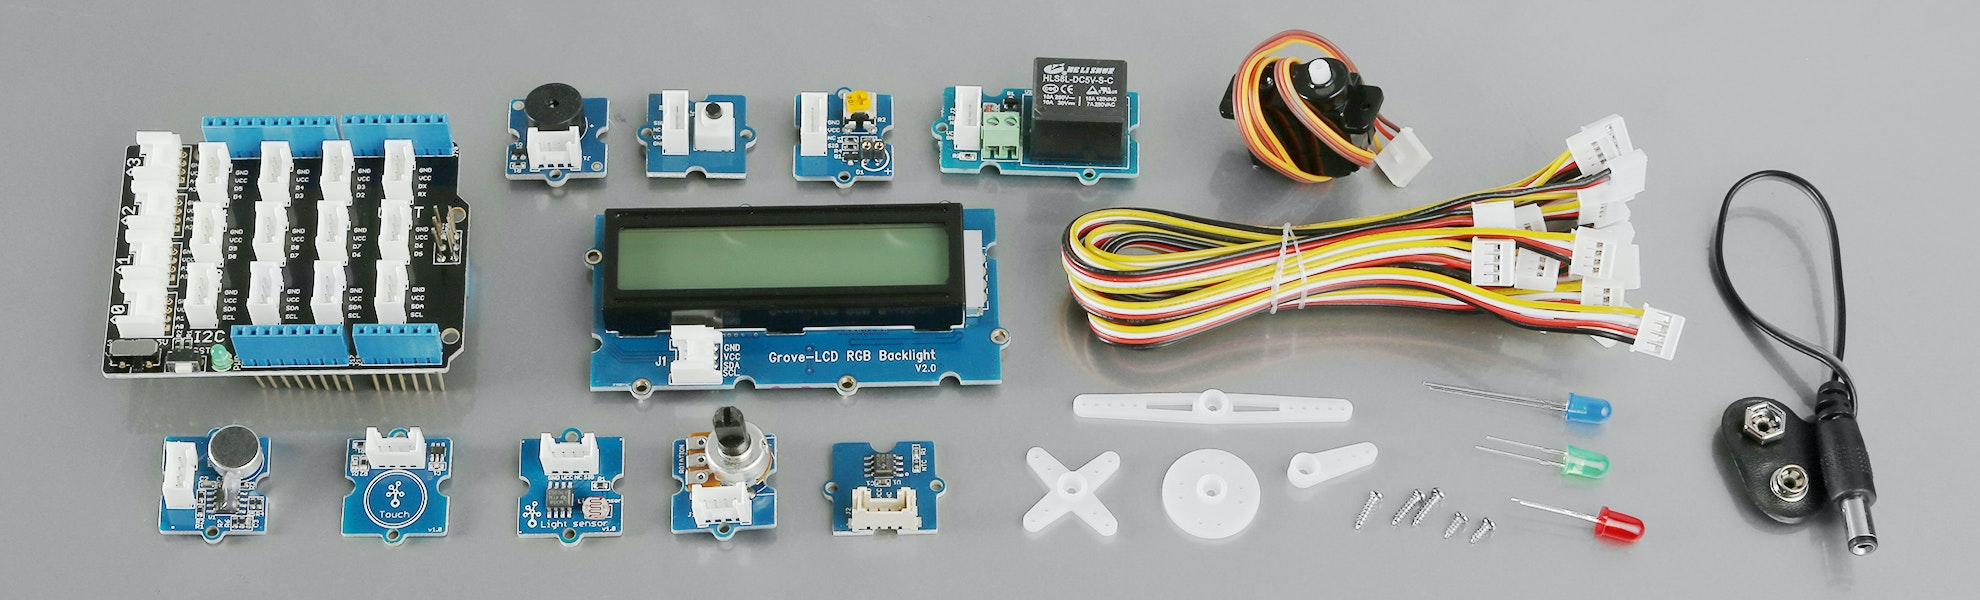 Seeed Grove Starter Kit for Arduino